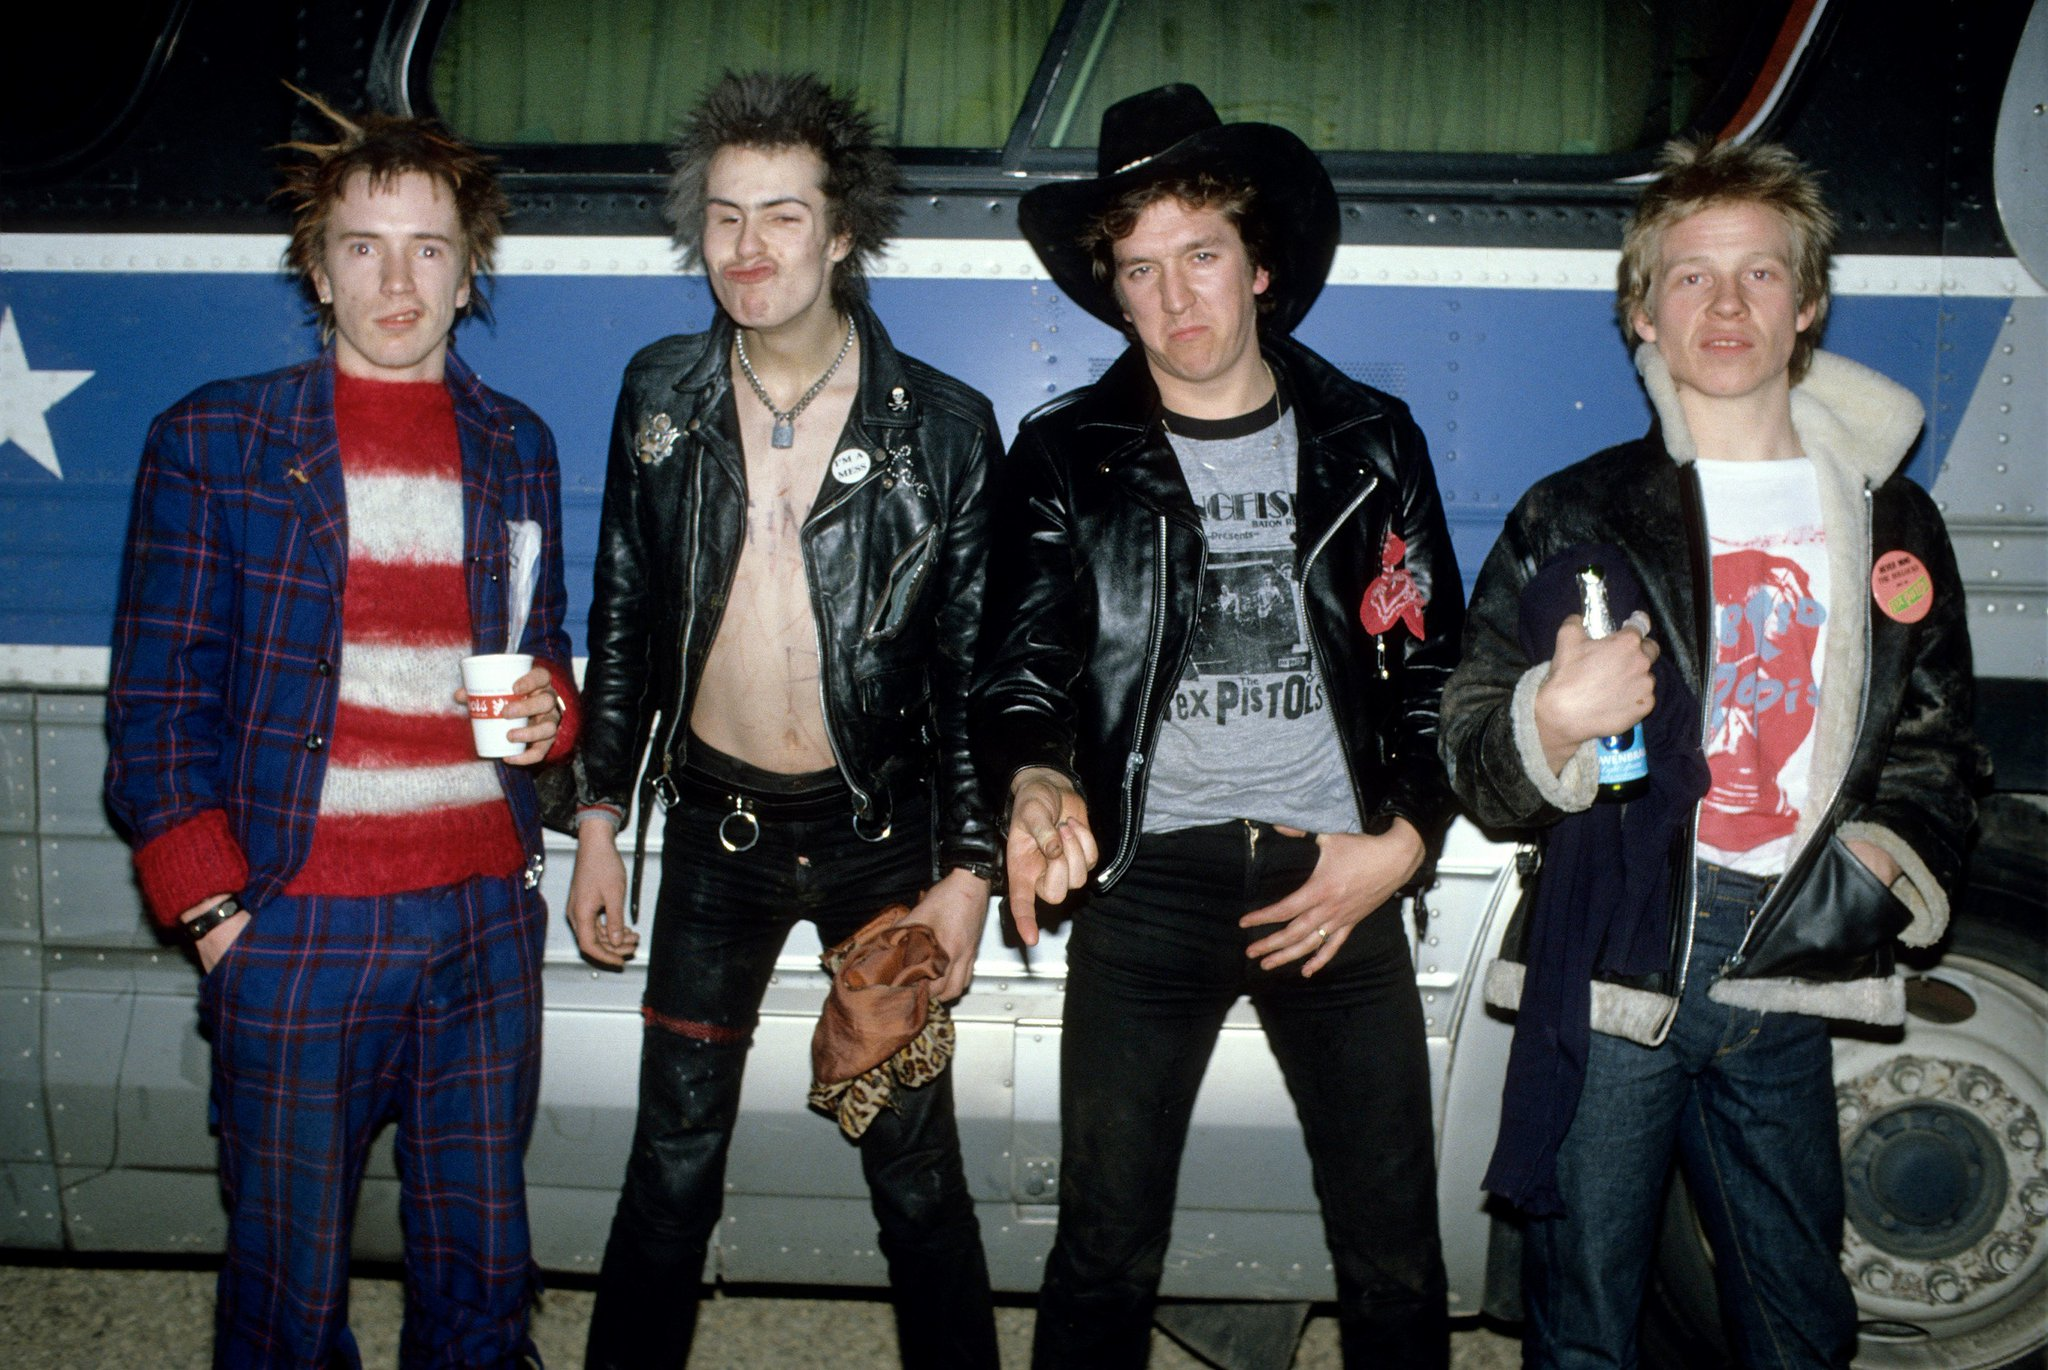 vicious-of-the-band-sex-pistols